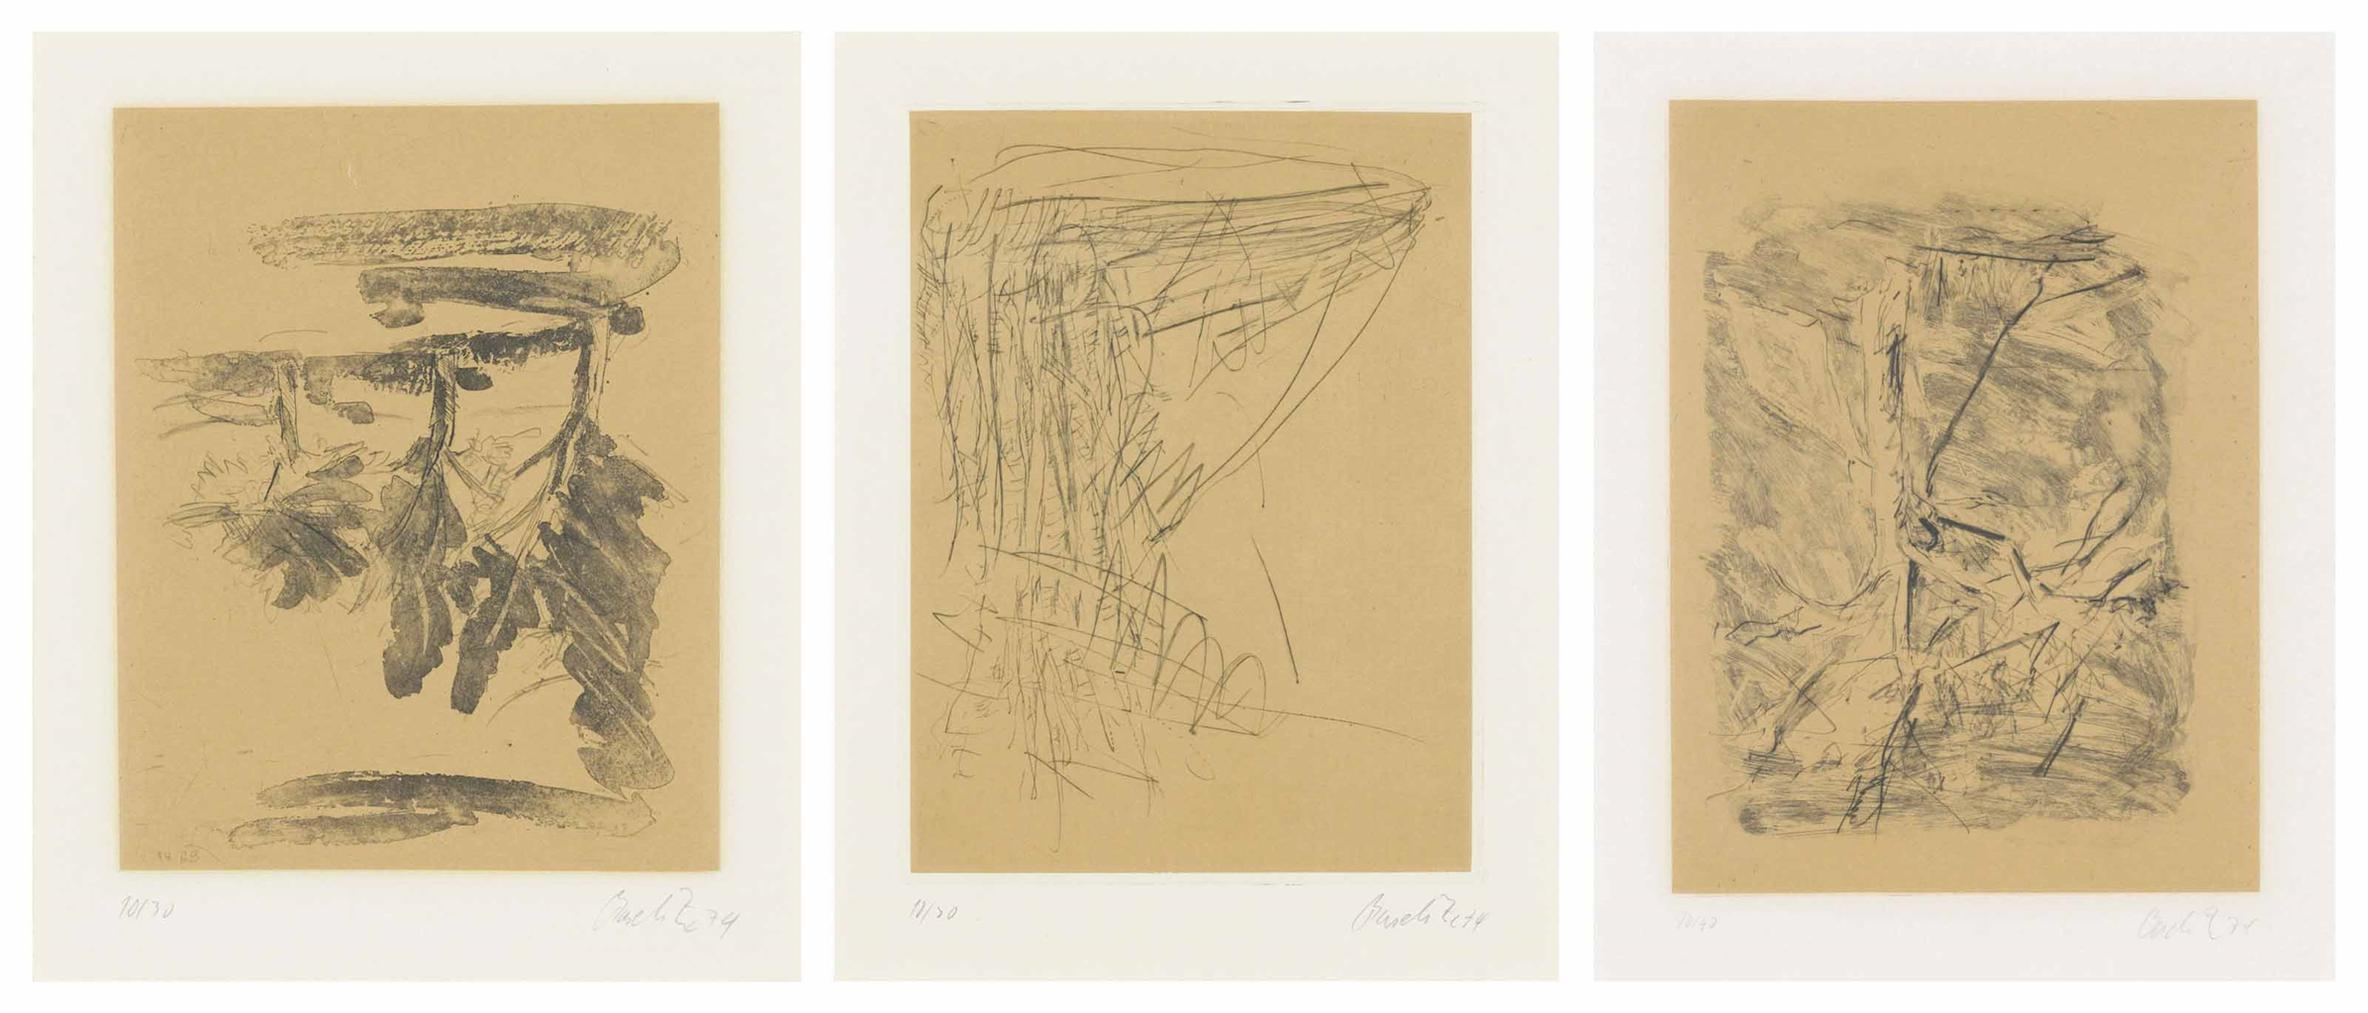 Georg Baselitz-Eighteen Plates, From: Baume-1974